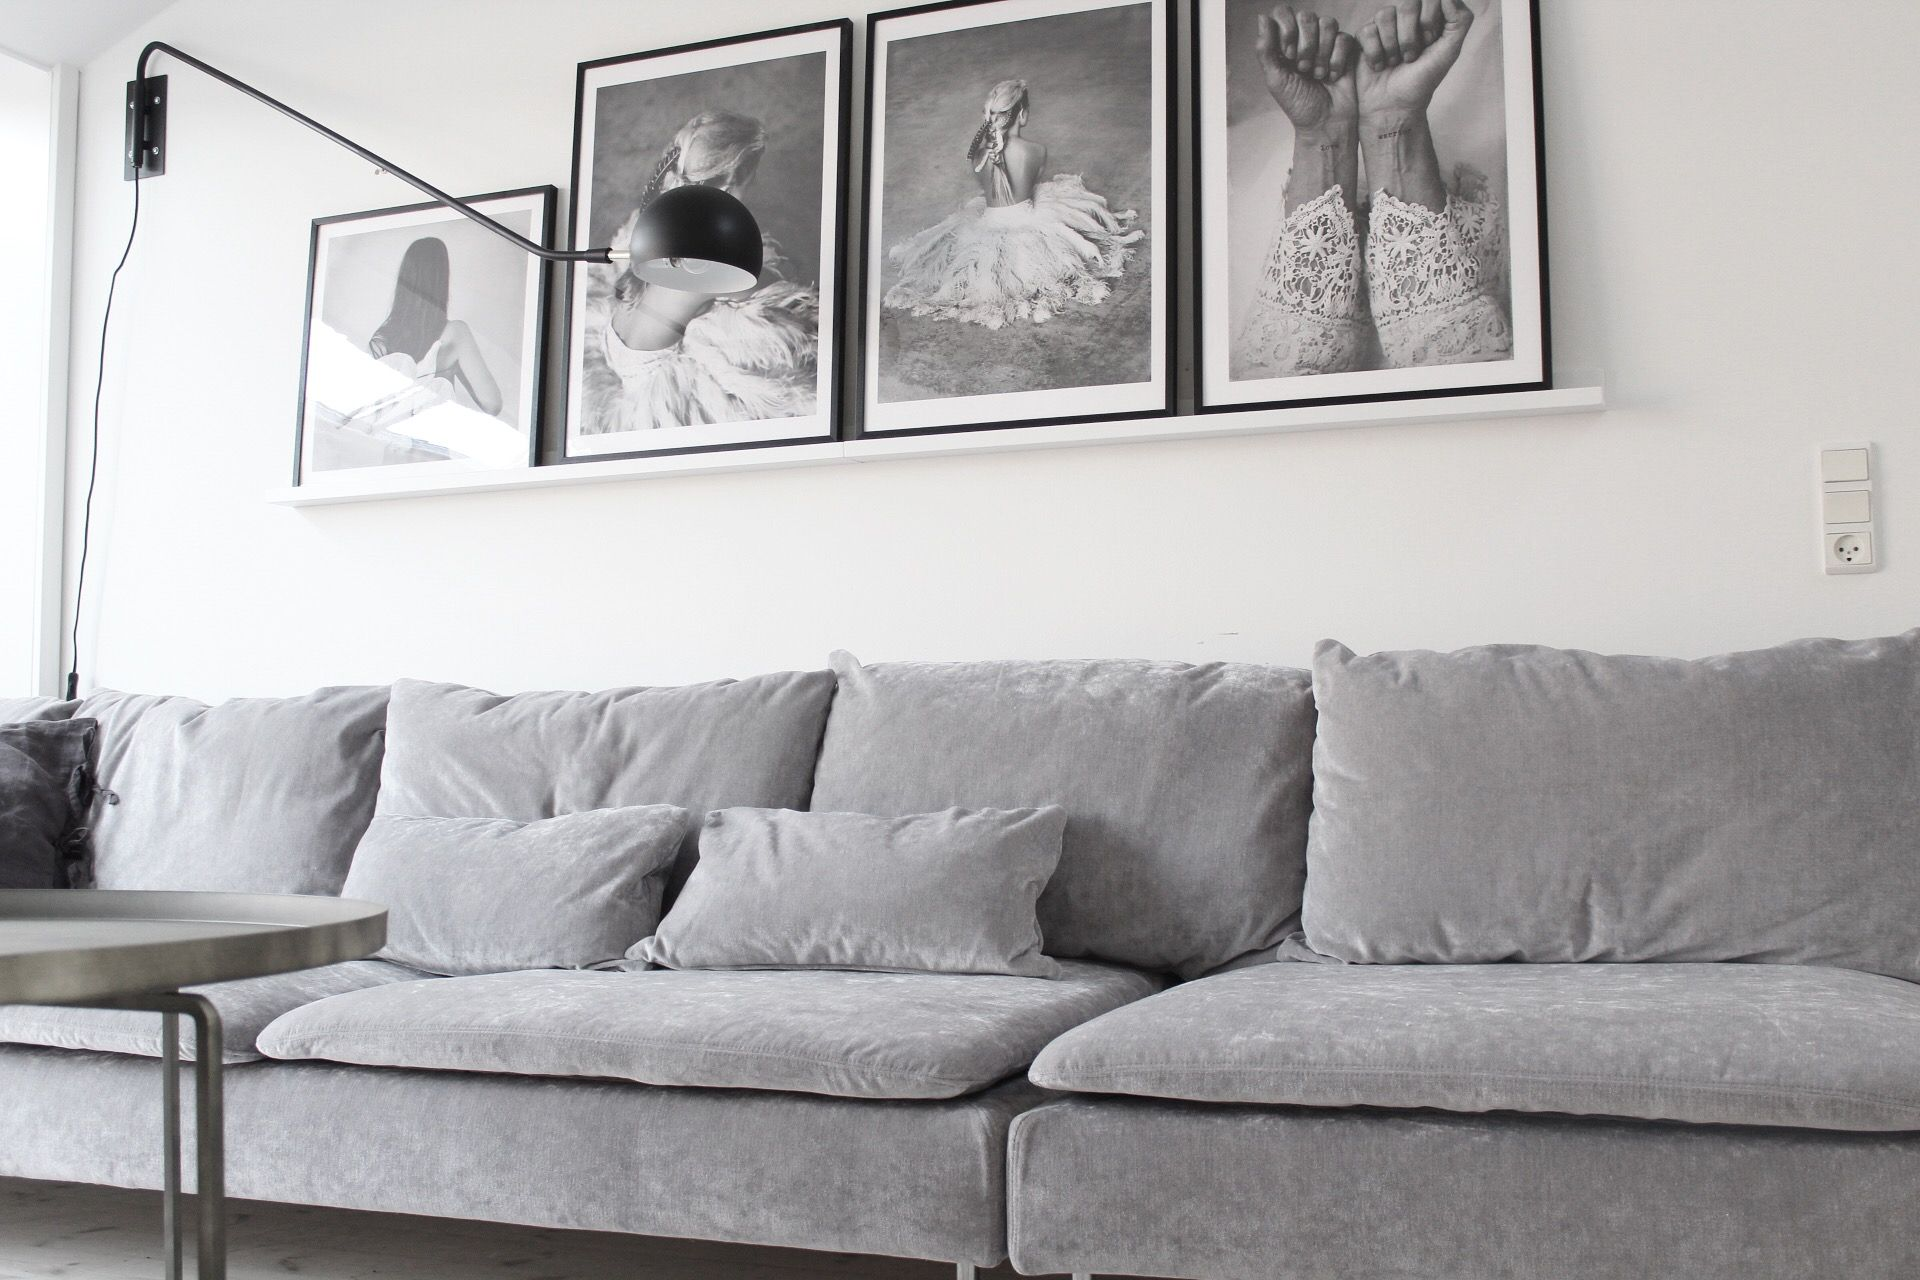 Cool Scandinavian Inspired Living Room With A Grey Velvet Sofa Black And White Photo Art Ikea Soderhamn Grey Sofa Inspiration Grey Velvet Sofa Velvet Sofa